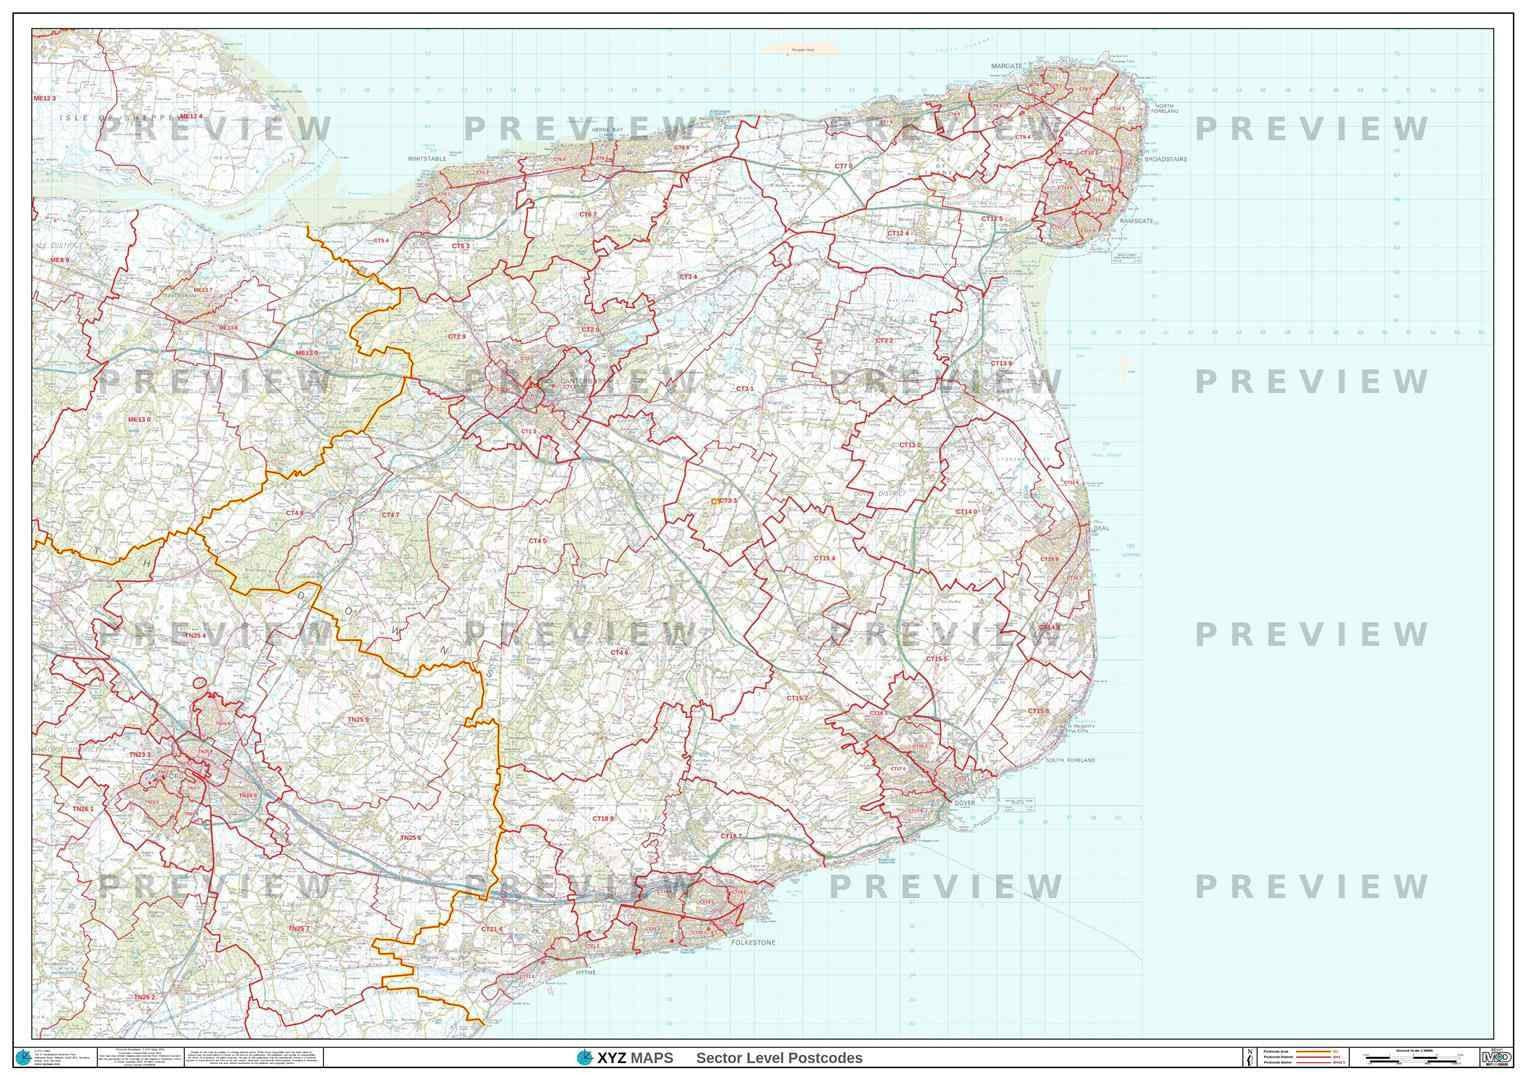 Ct postcode map for the canterbury postcode area gif or pdf ct postcode map pdf or gif download gumiabroncs Choice Image